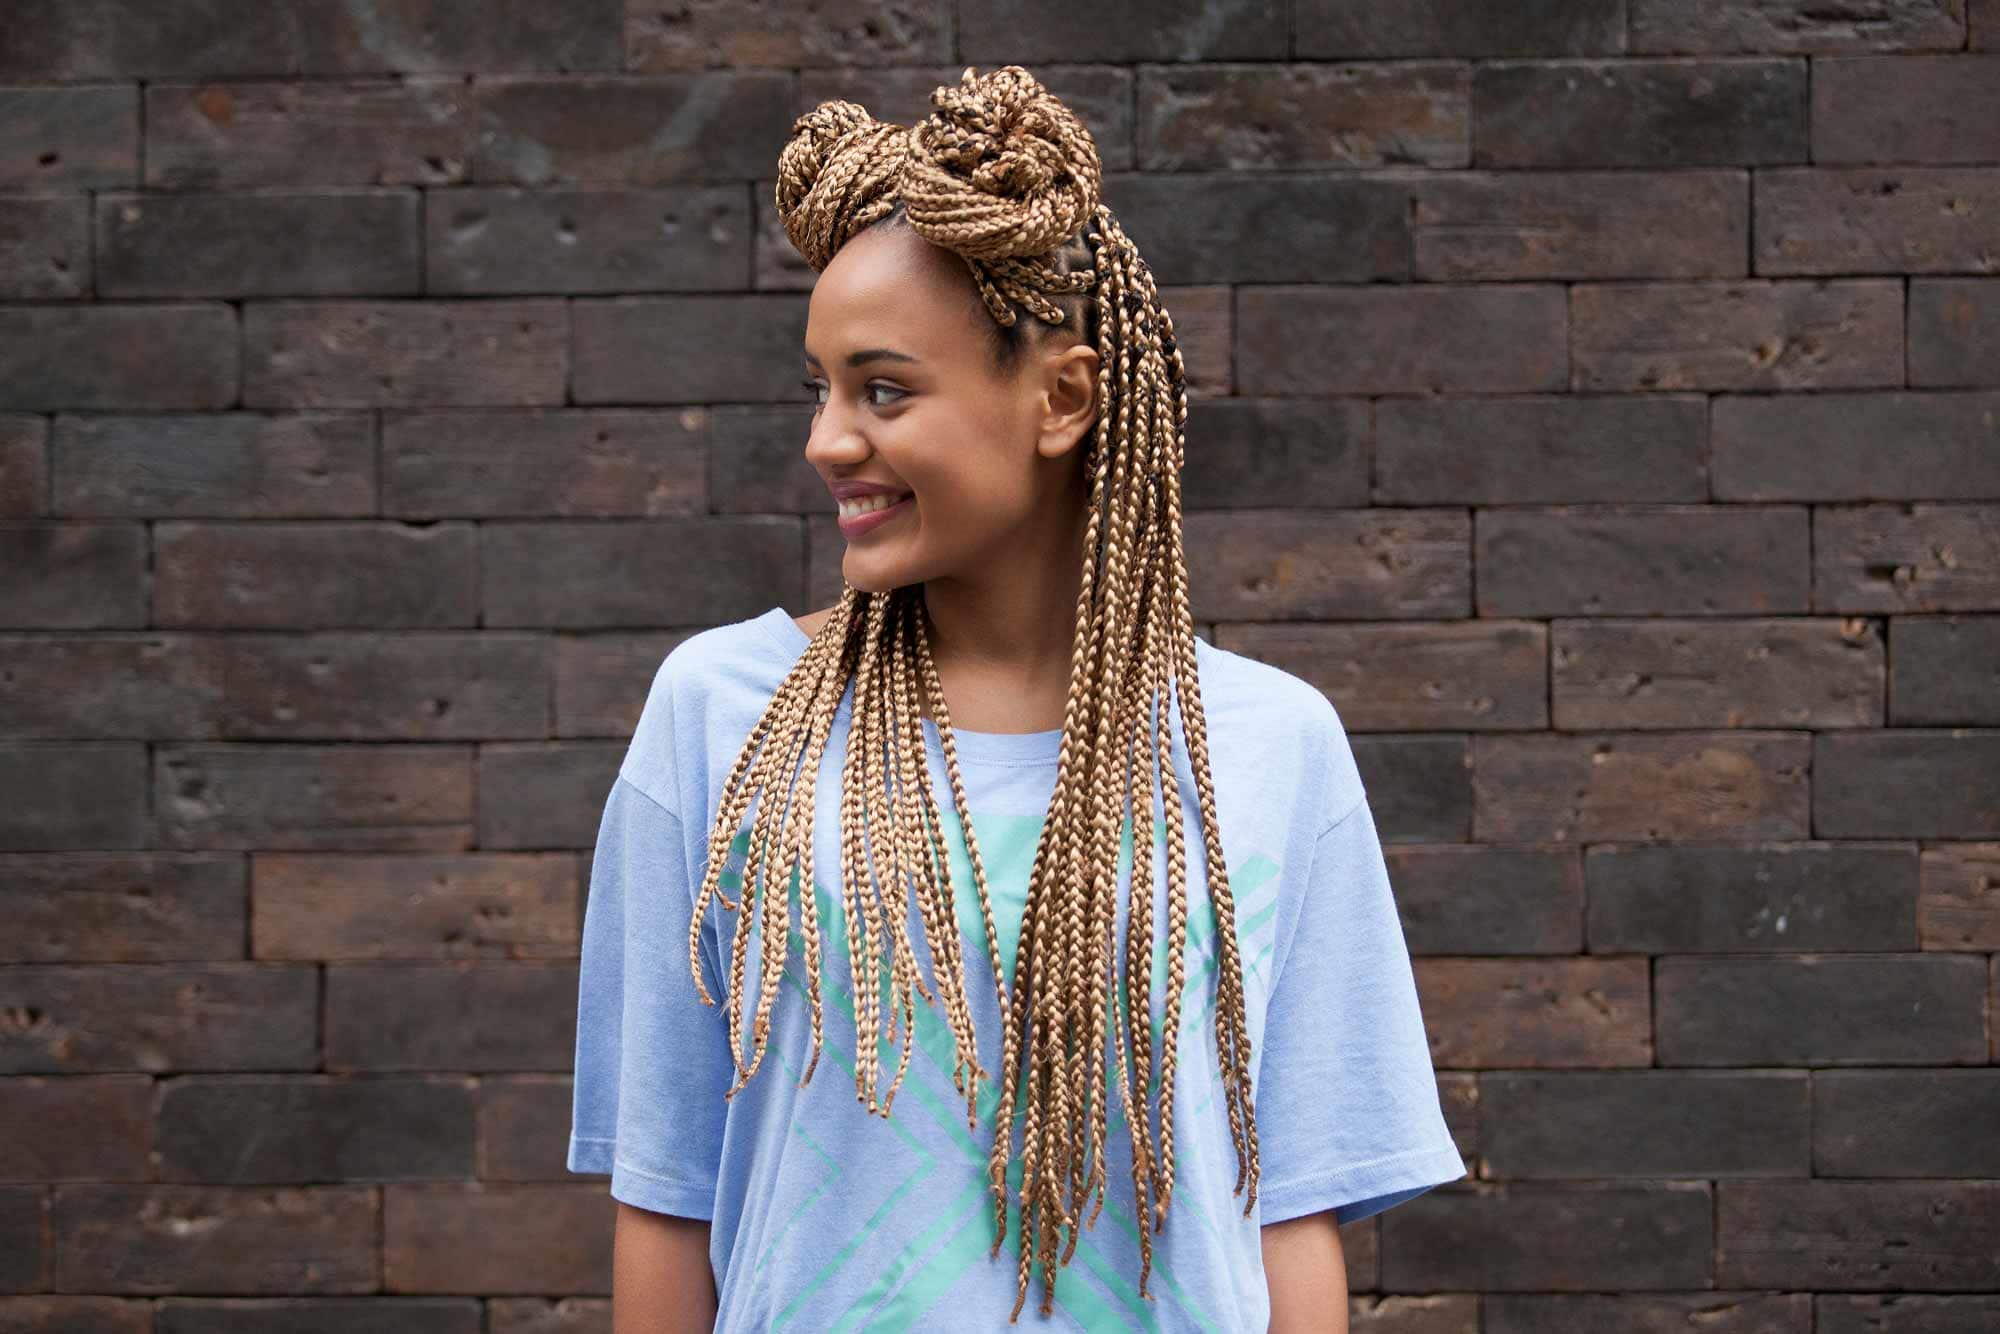 a smiling woman with two braided buns in front of a brick wall